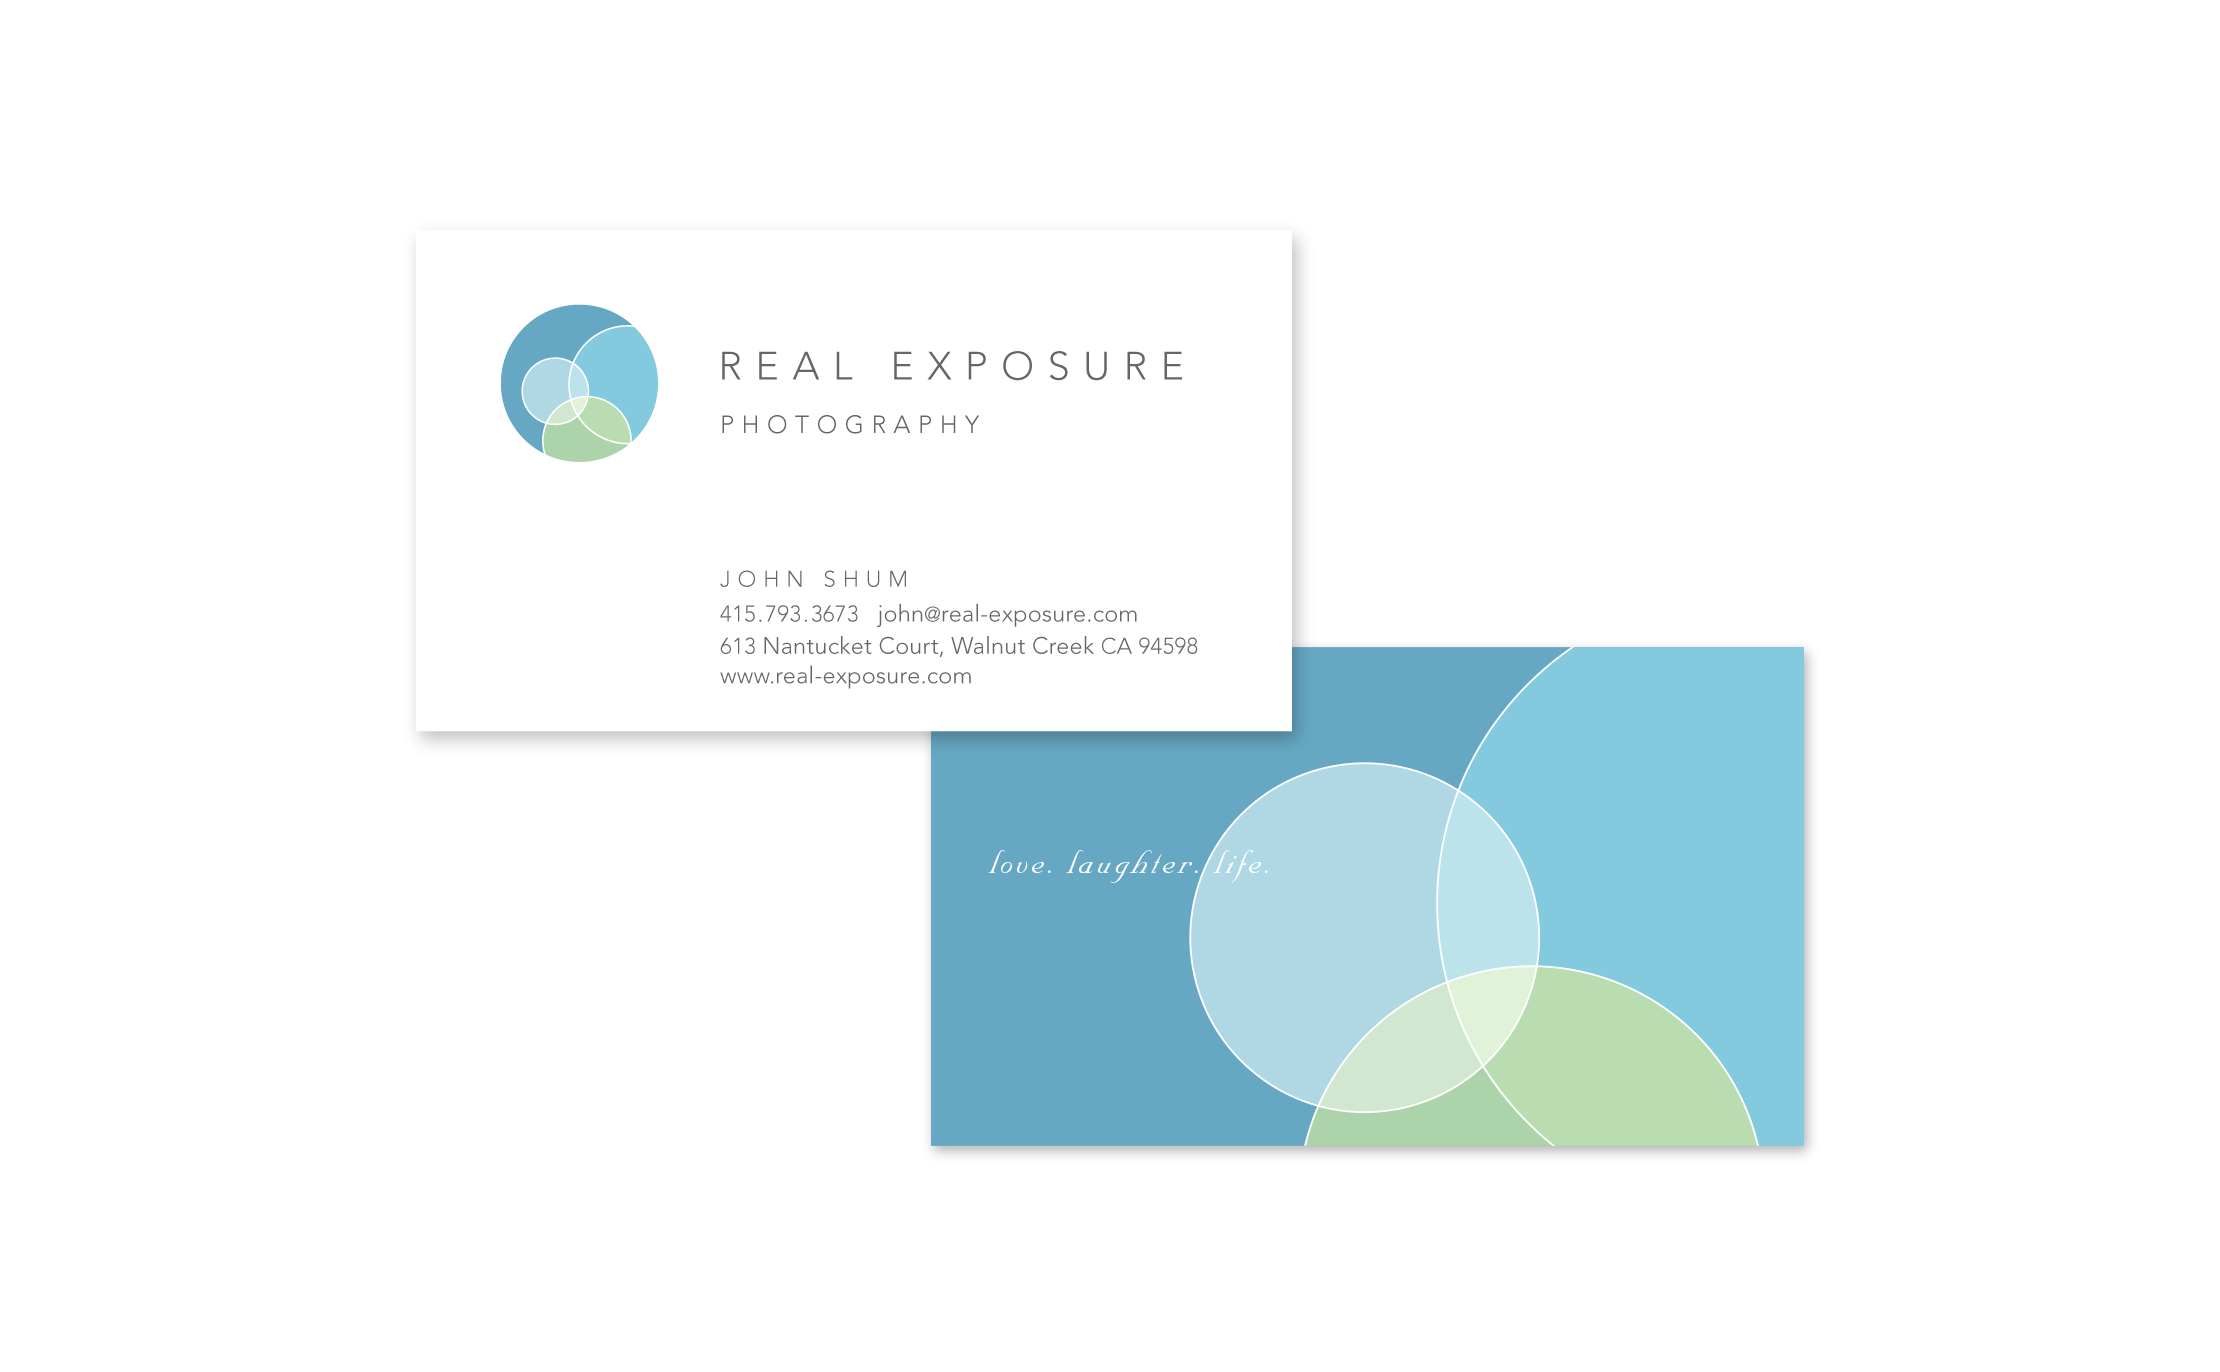 real_exposure_biz-card3.png